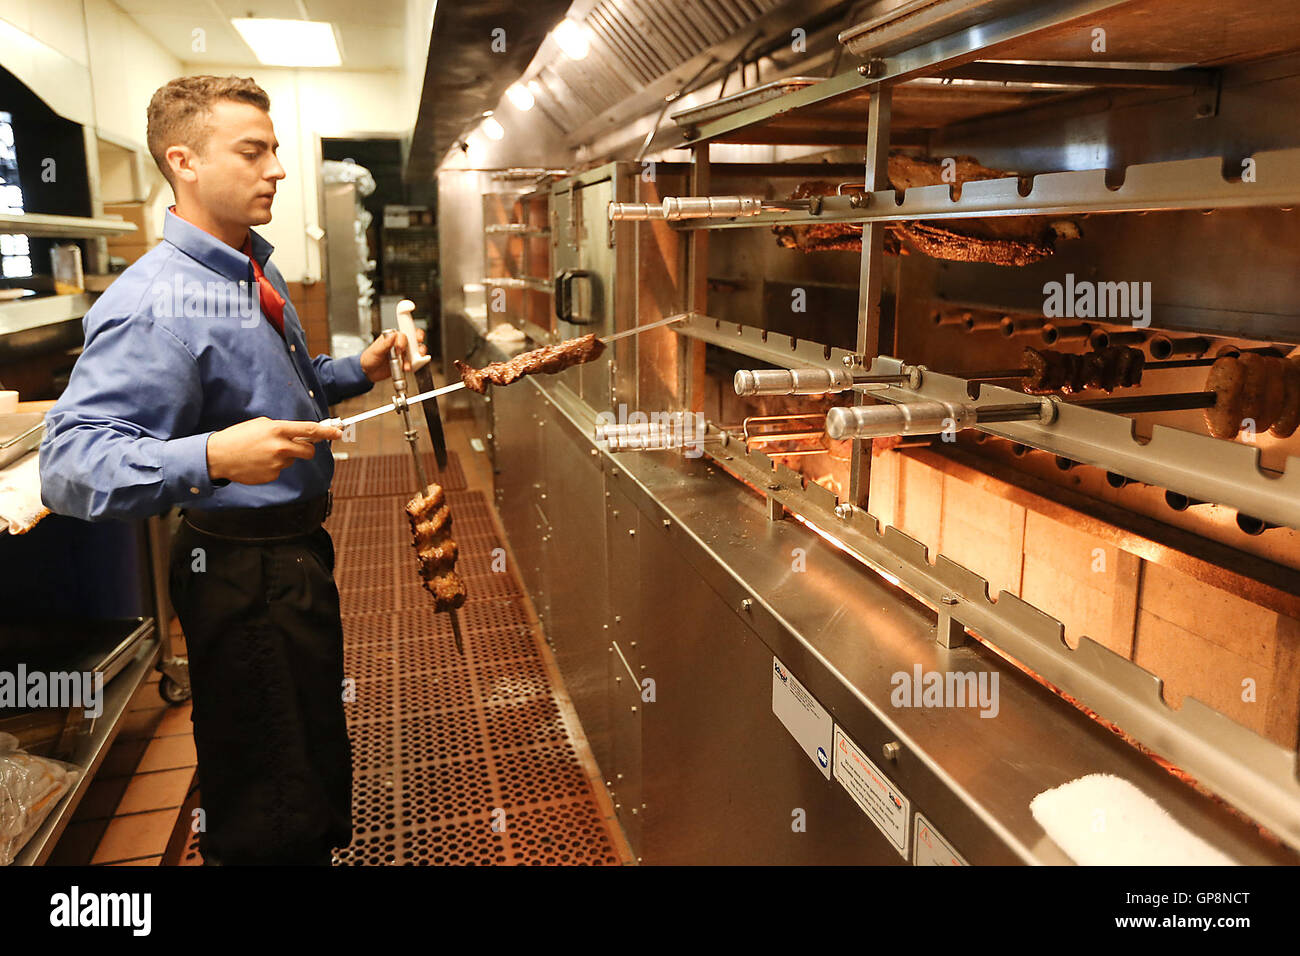 Napa, CA, USA. 26th Aug, 2016. Galpao Gaucho Brazilian Steakhouse gaucho chef Wagner Santos rotates skewers of meat - Stock Image